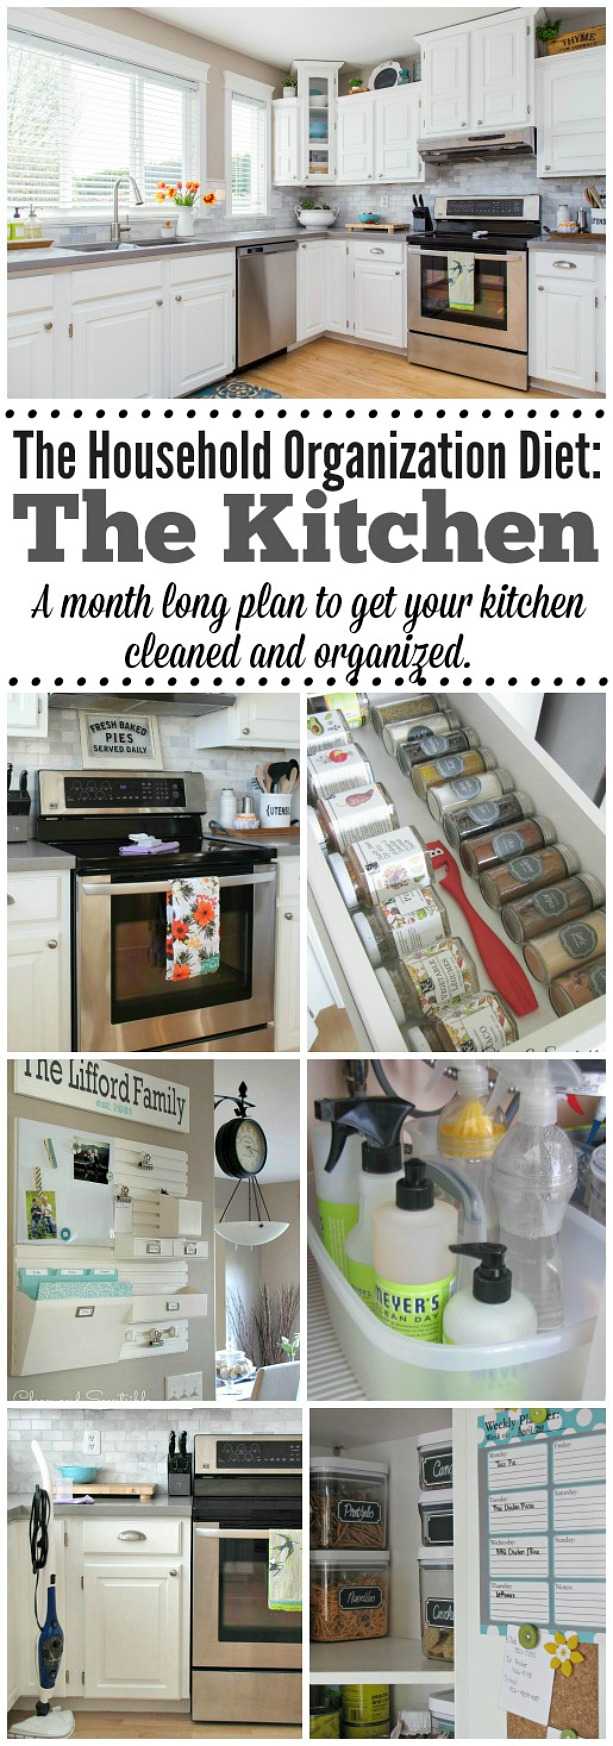 Organize, deep clean, and declutter one room in your house per month. By the end of the year you will have an organized home and an established plan to keep it that way!